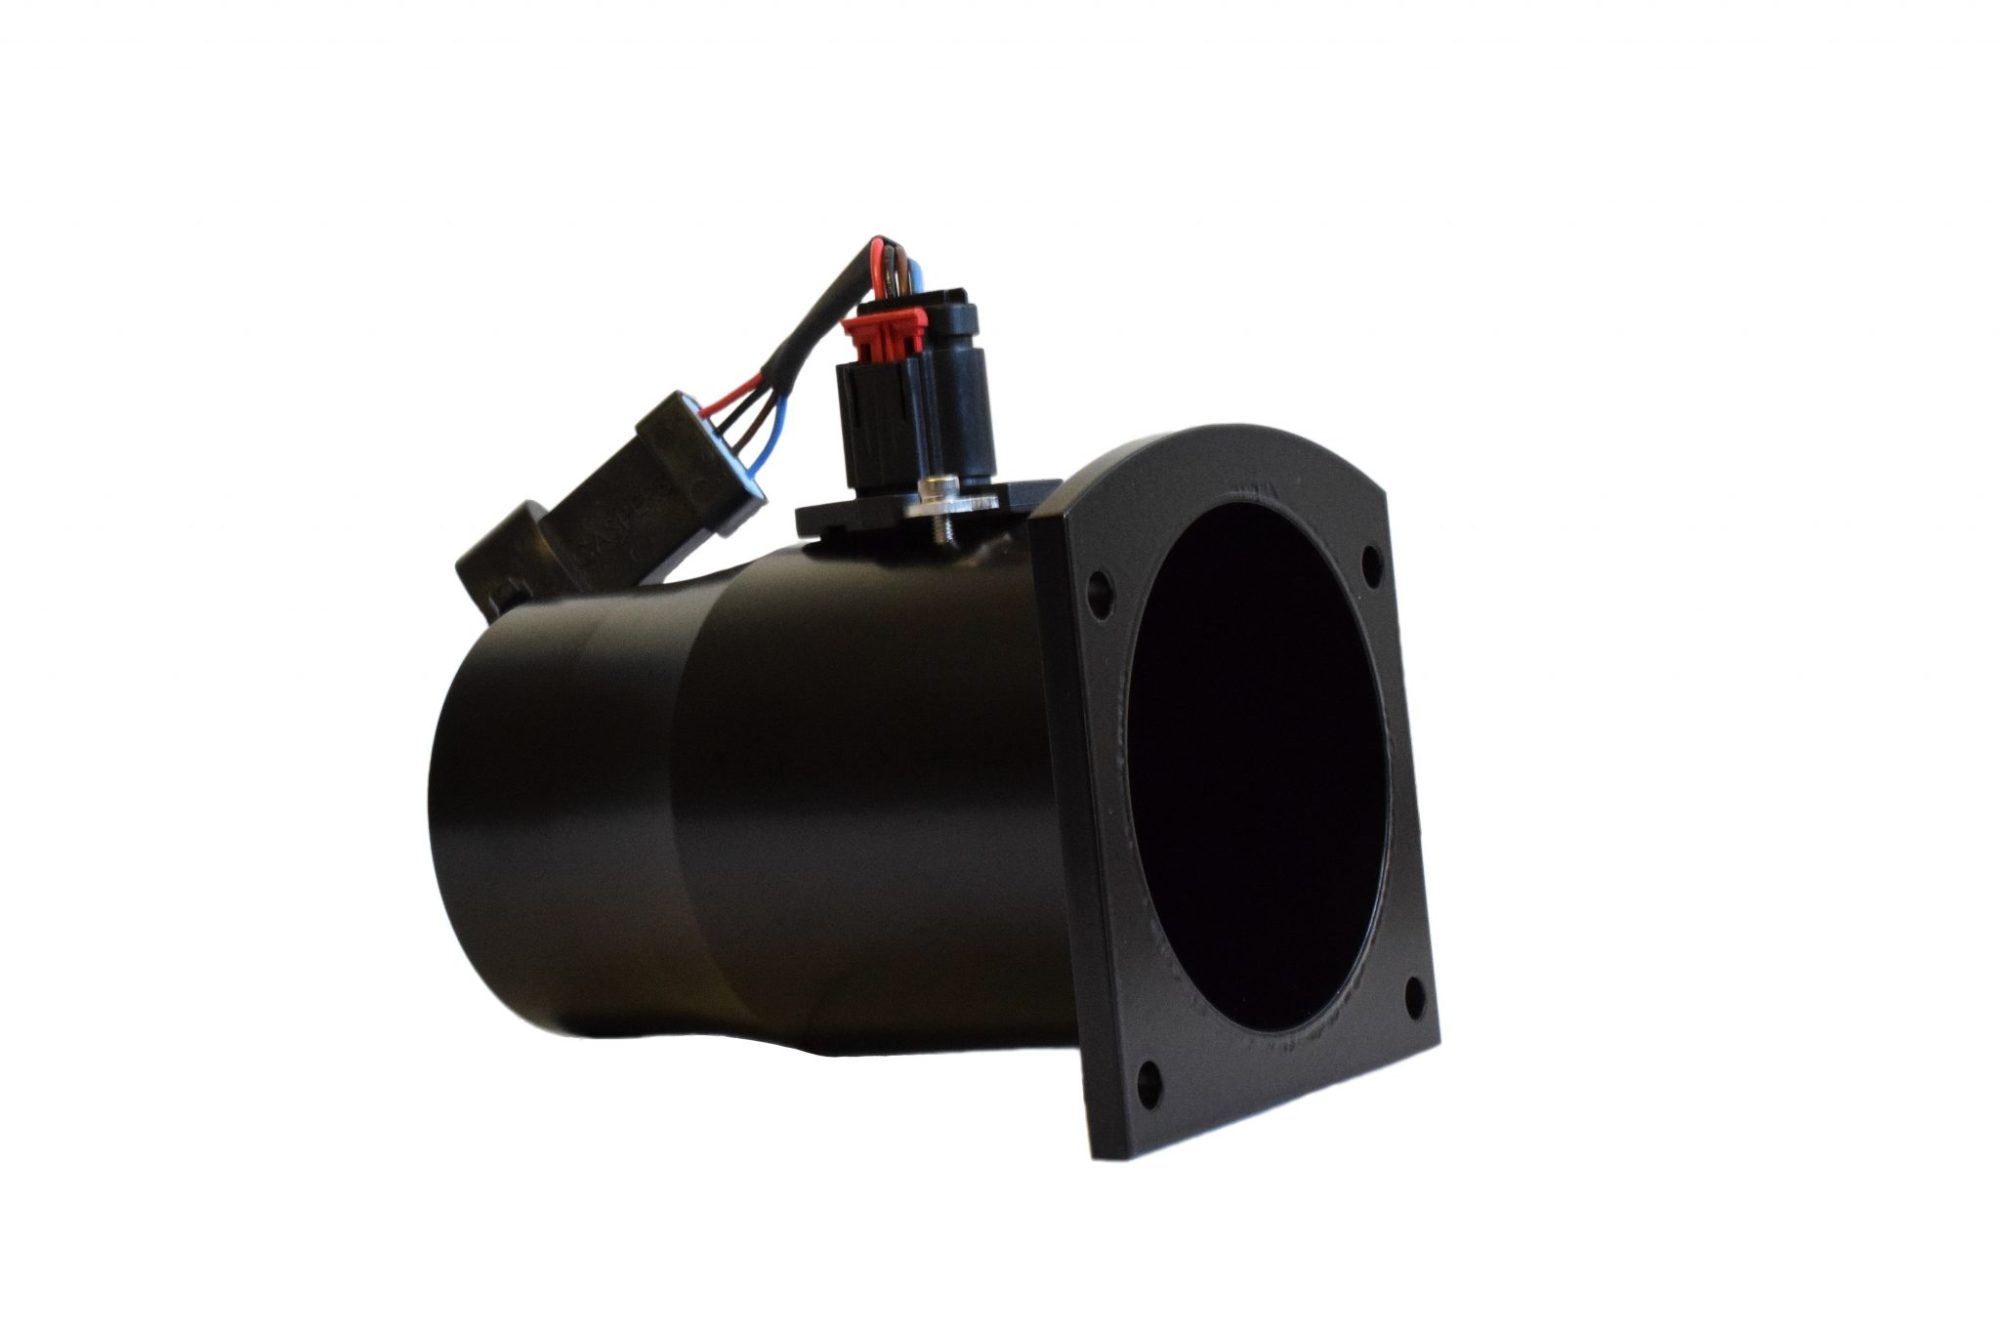 hight resolution of mh80fb 24ca 80mm housing w tuned maf 24lb injectors w cold air intake black